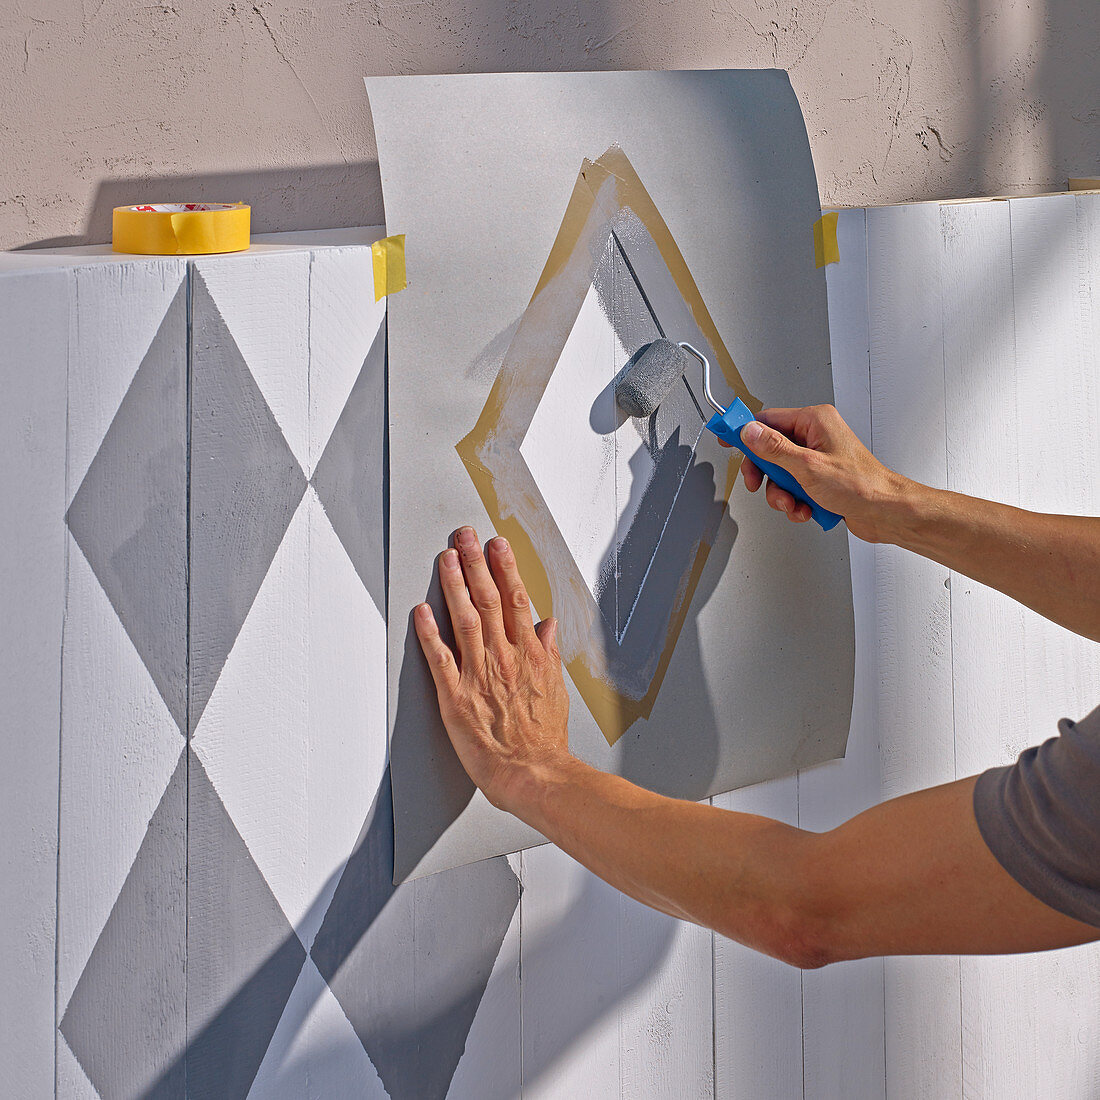 Applying a diamond pattern to board wall using a template